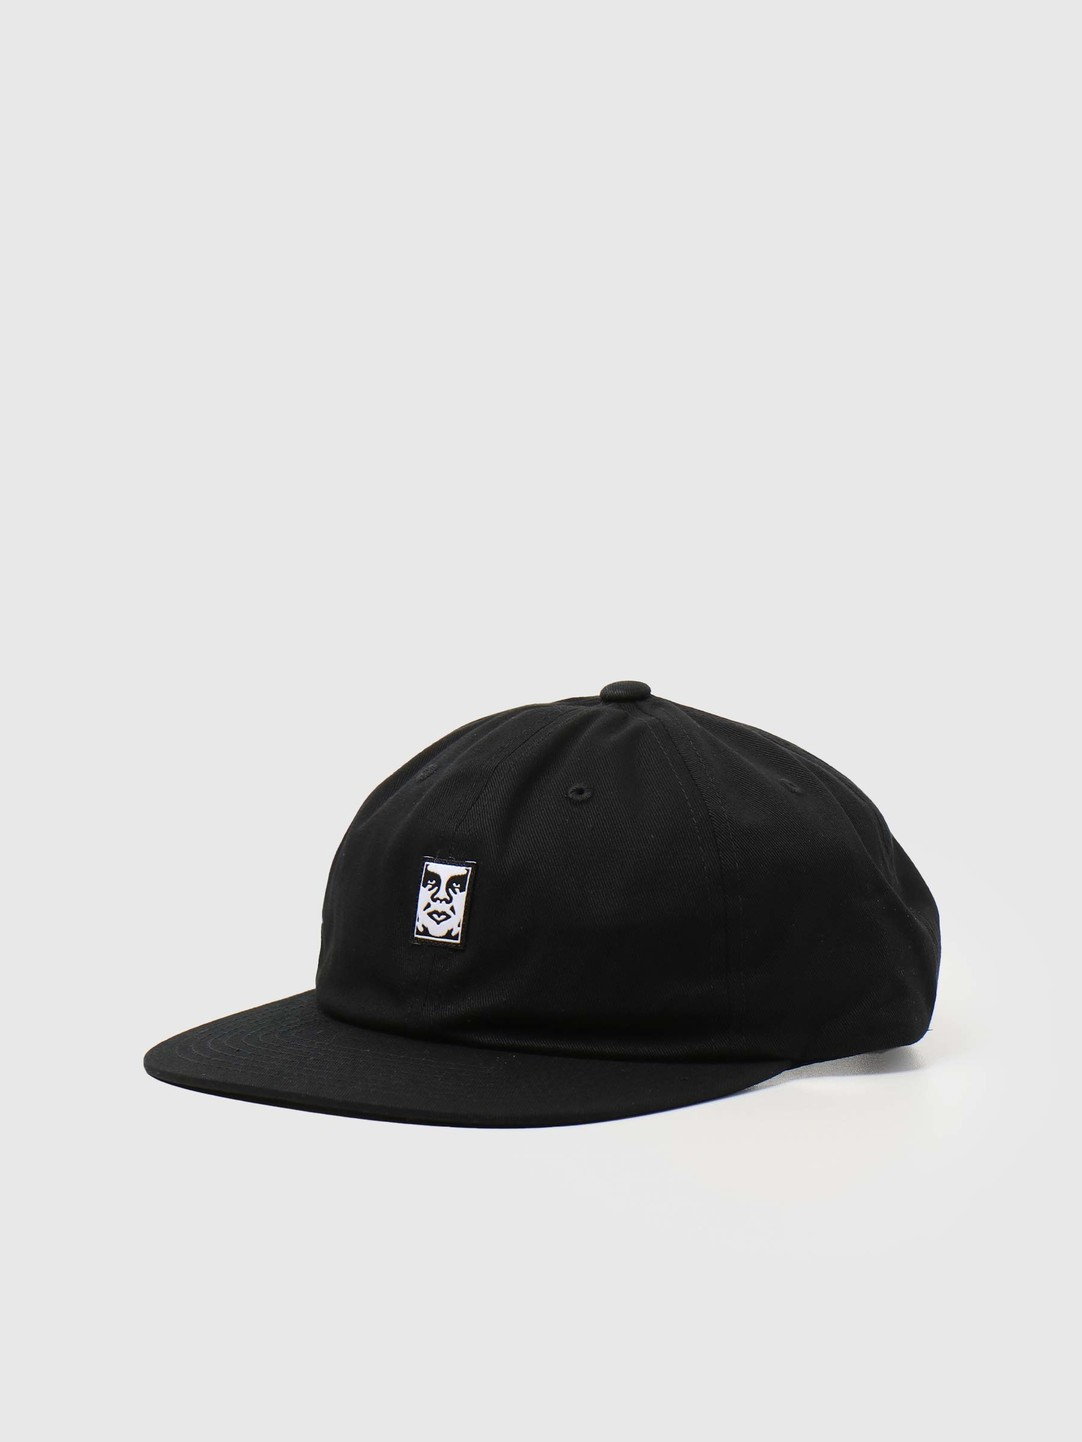 Obey Obey Icon Face 6 Panel Strapback Black 100580251BLK